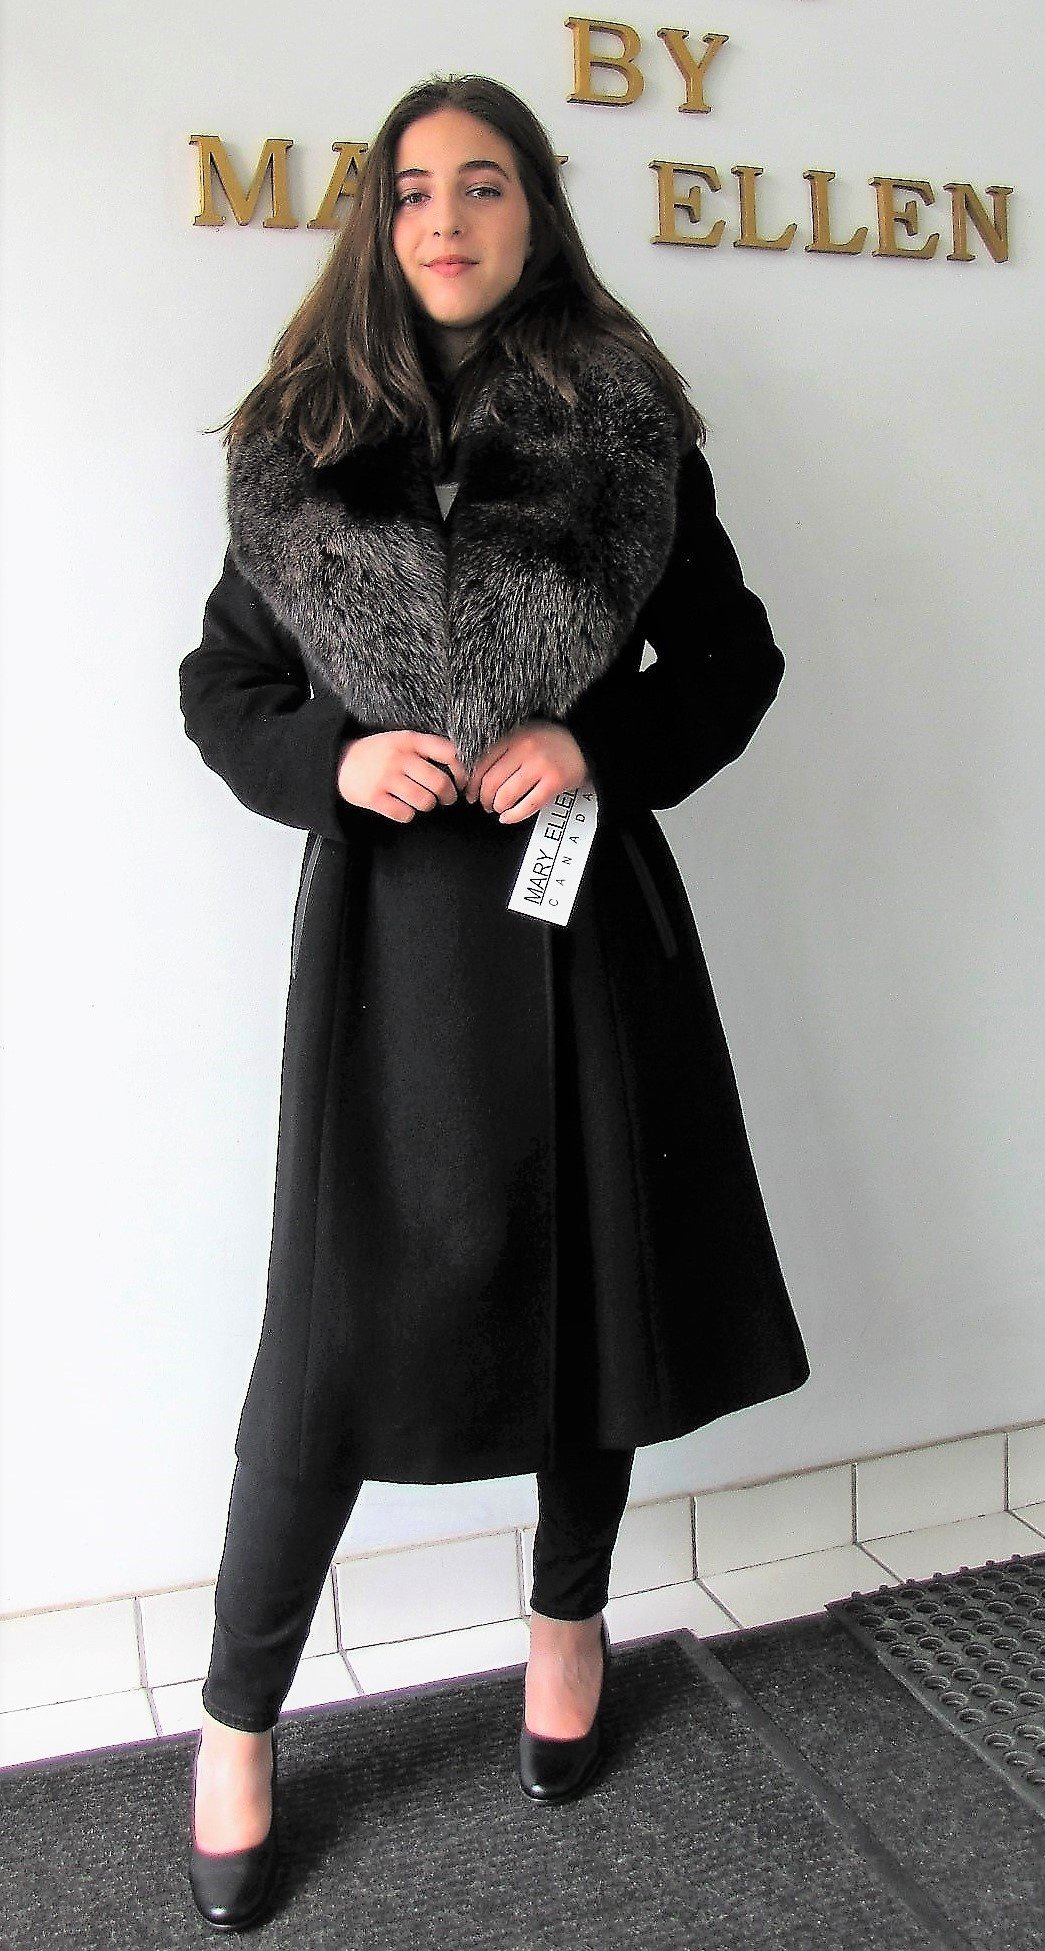 Style# 4403 Black with Snowtop Fox Collar.   Cashmere/Wool  Features:  Magnificent  Snowtop Fox Collar. The world seems to melt away the moment you slip it on.  Wrap style coat with self-belt that cinches the  waist, genuine leather trim, and inner tie.  Wear it with elegance, ease, and confidence that you have made an  exceptional choice. Full chamois lining.  In-Stock Colours:  Black, Red, Grey, Plum, Camel or can be made in the colour of your choice.   Various Fabrics: Cashmere and Cashmere/Wool Blends,  Alpaca blends, 100% Pure Virgin Wool  and other fine fabrics   Sizes: S, M, L   Price: $1,200 and up